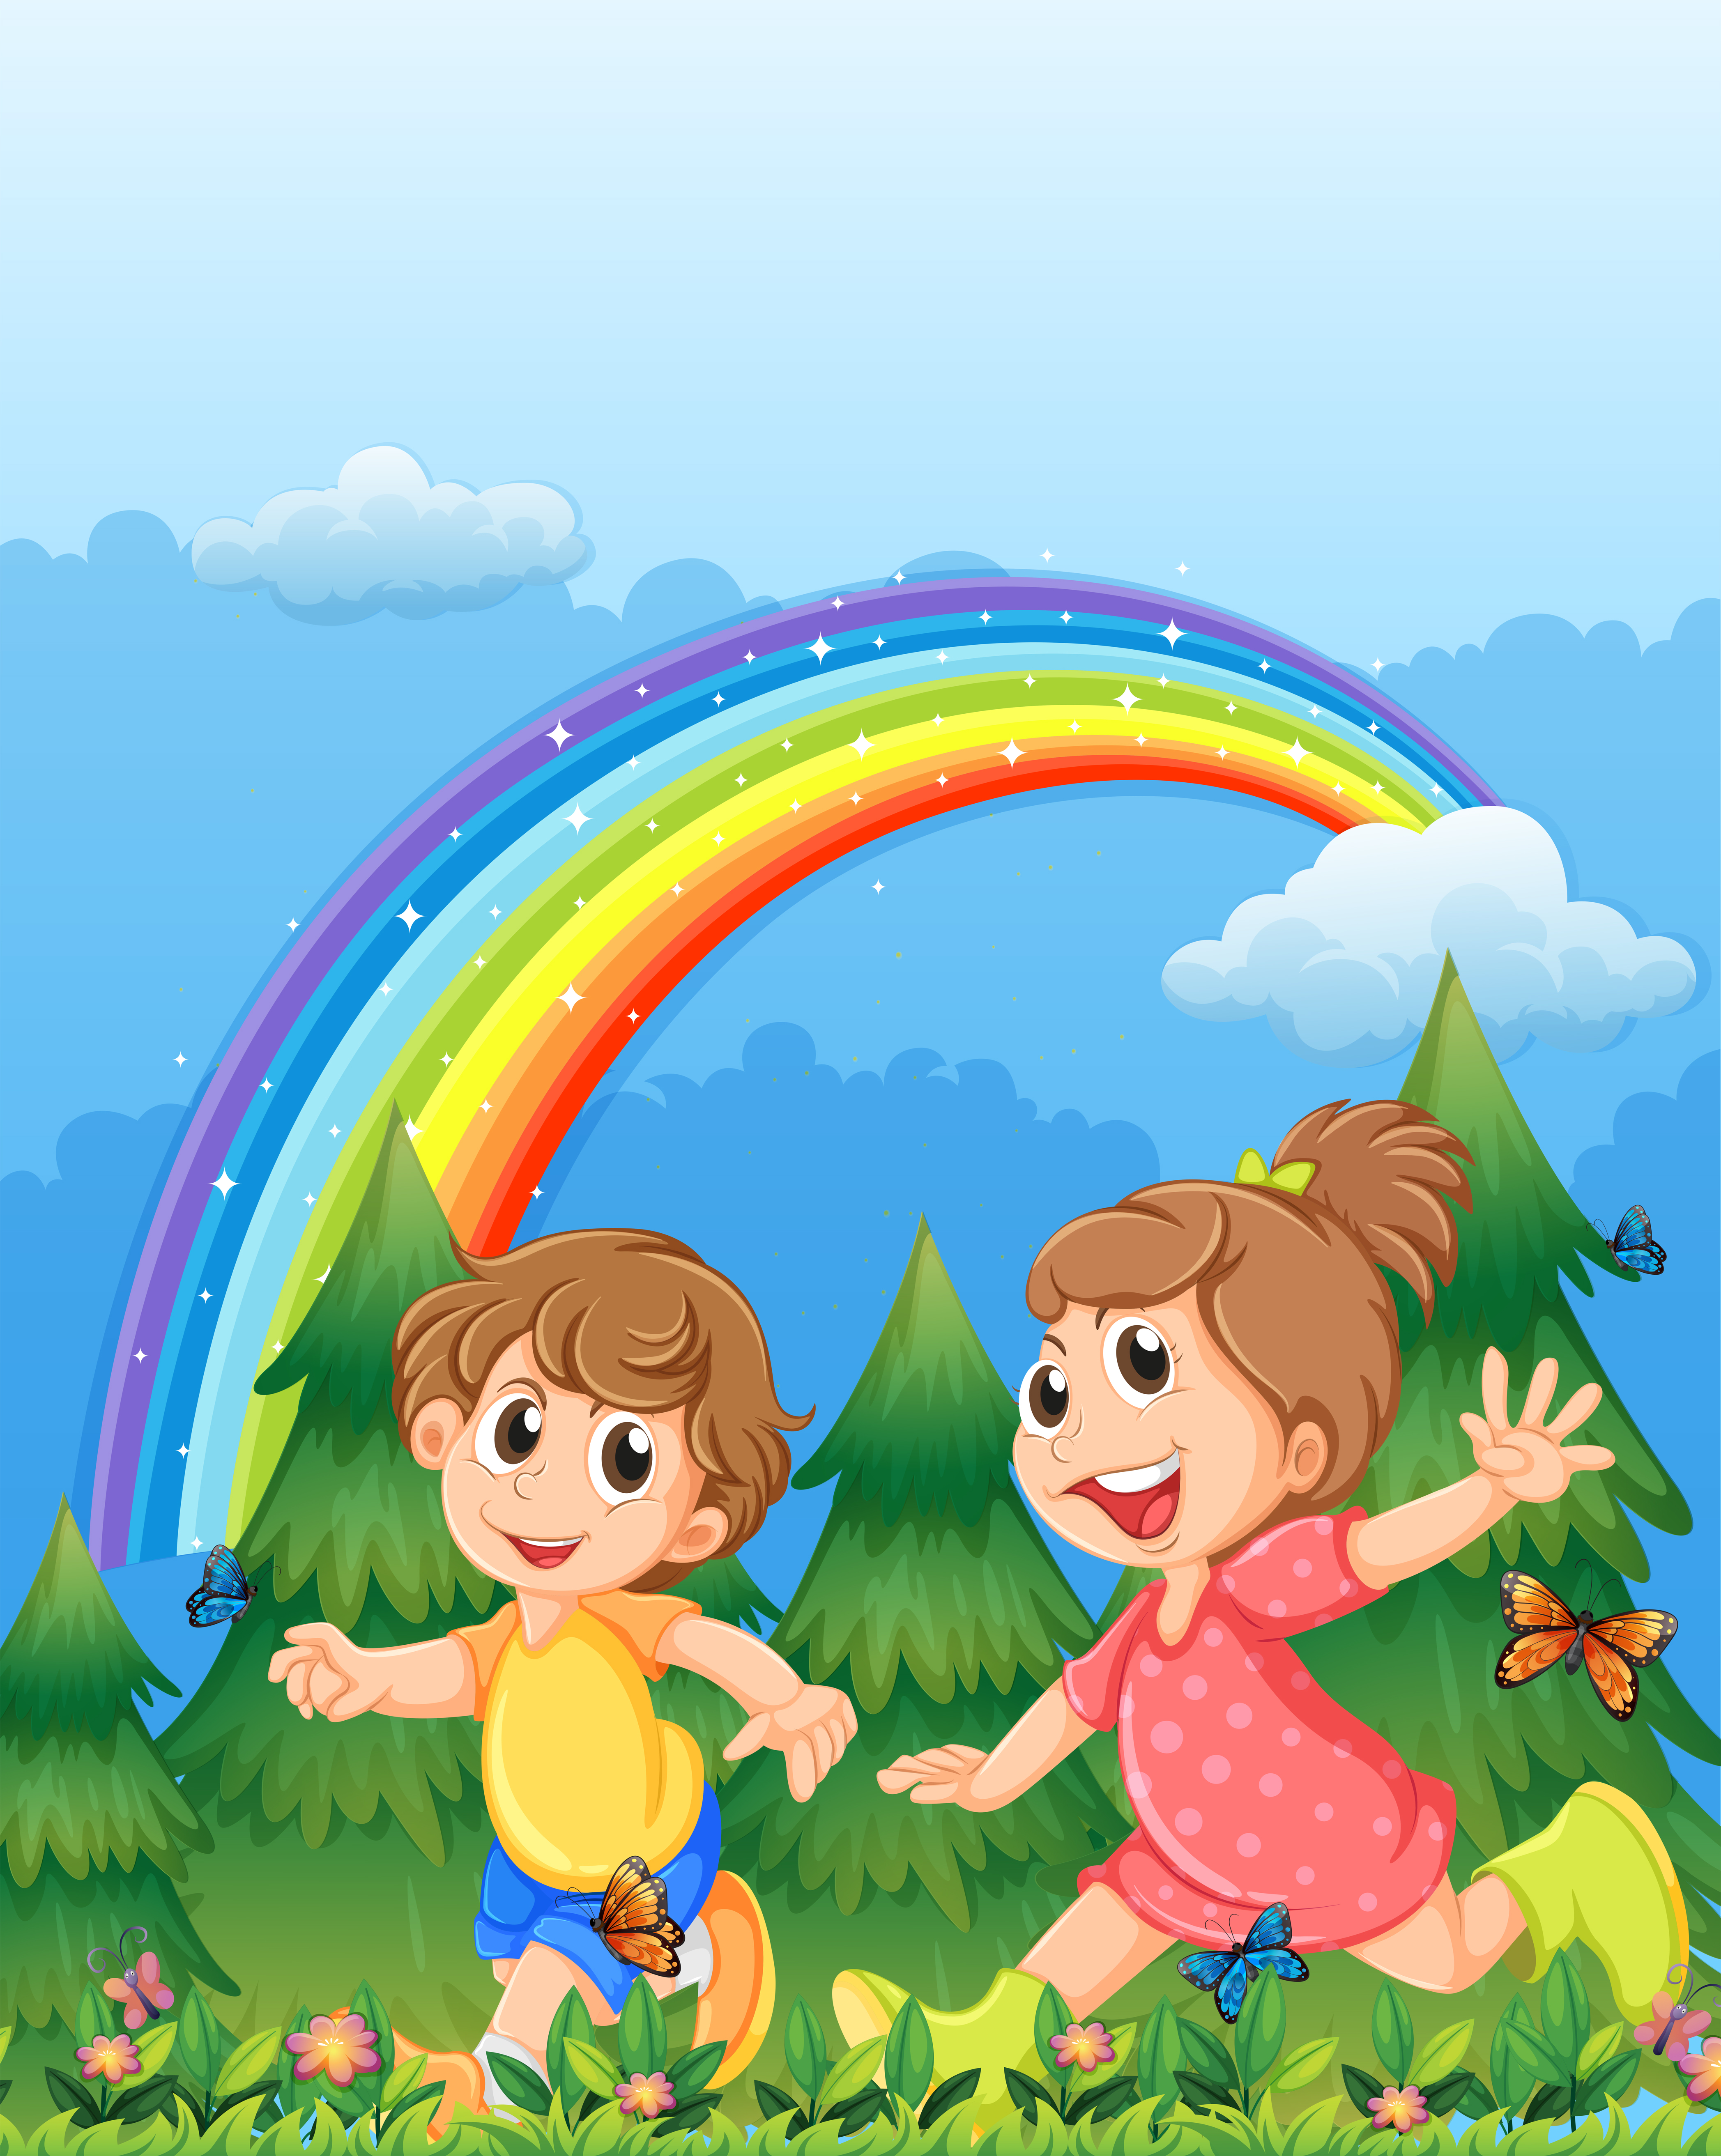 Kids playing near the garden with a rainbow in the sky ...